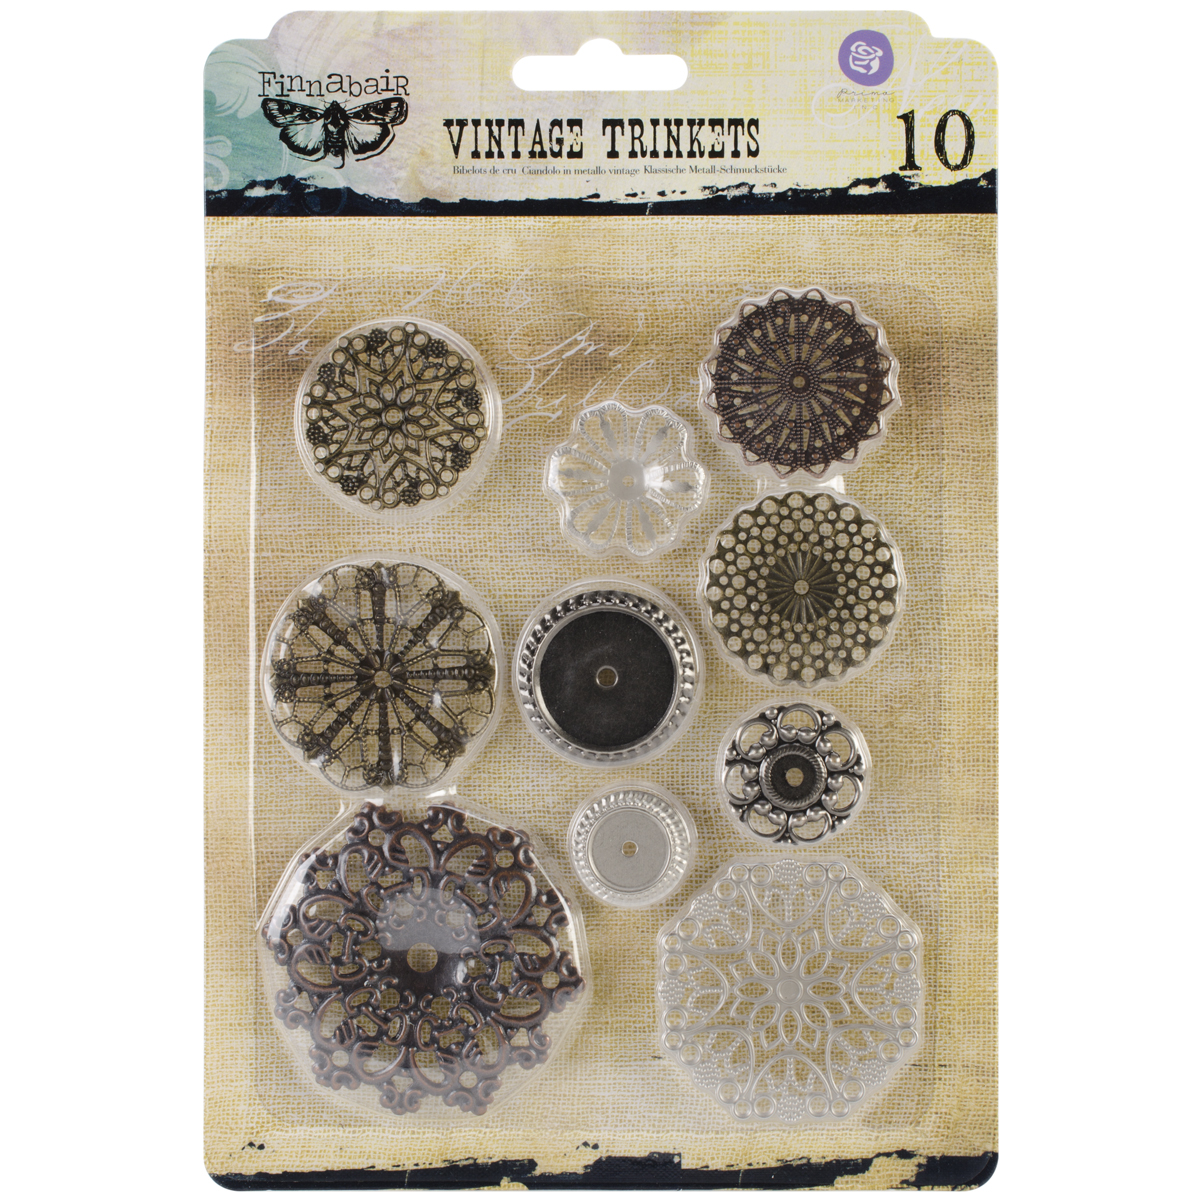 Sunrise Sunset Mechanicals Metal Vintage Trinkets-Flowers Small 1, 10/Pkg